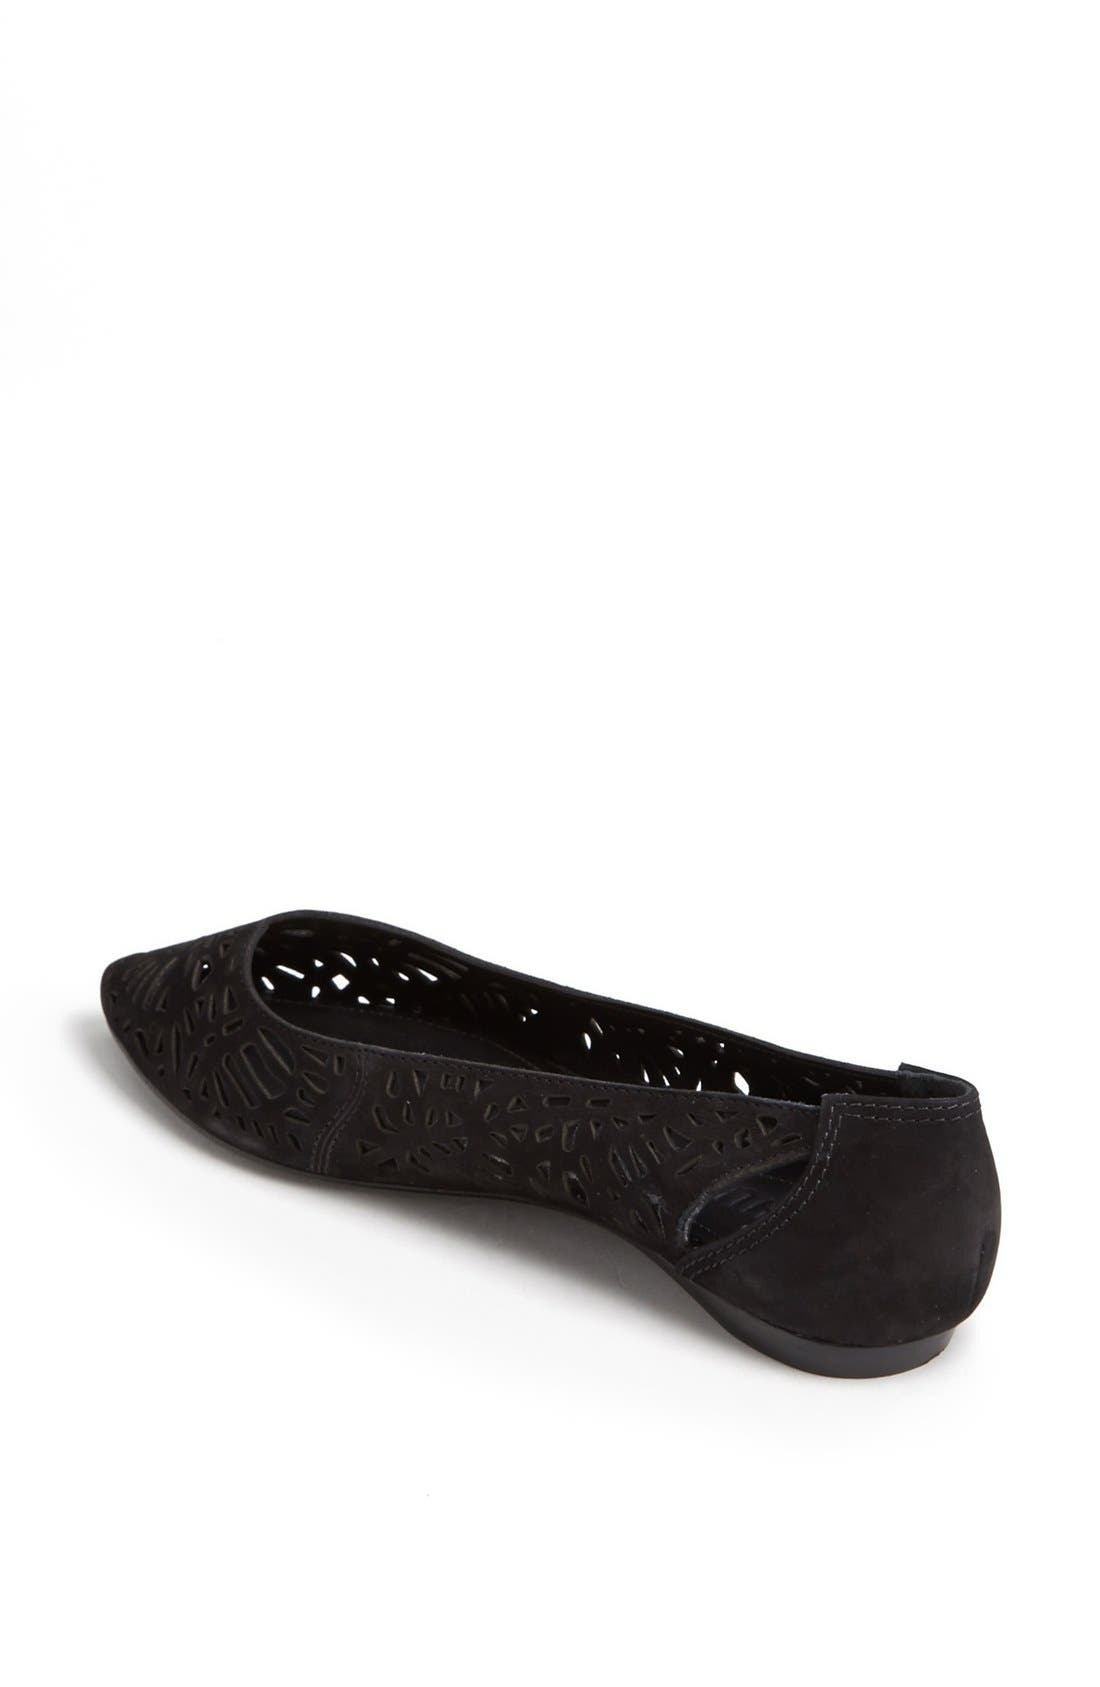 'Cicely' Perforated Flat,                             Alternate thumbnail 2, color,                             Black